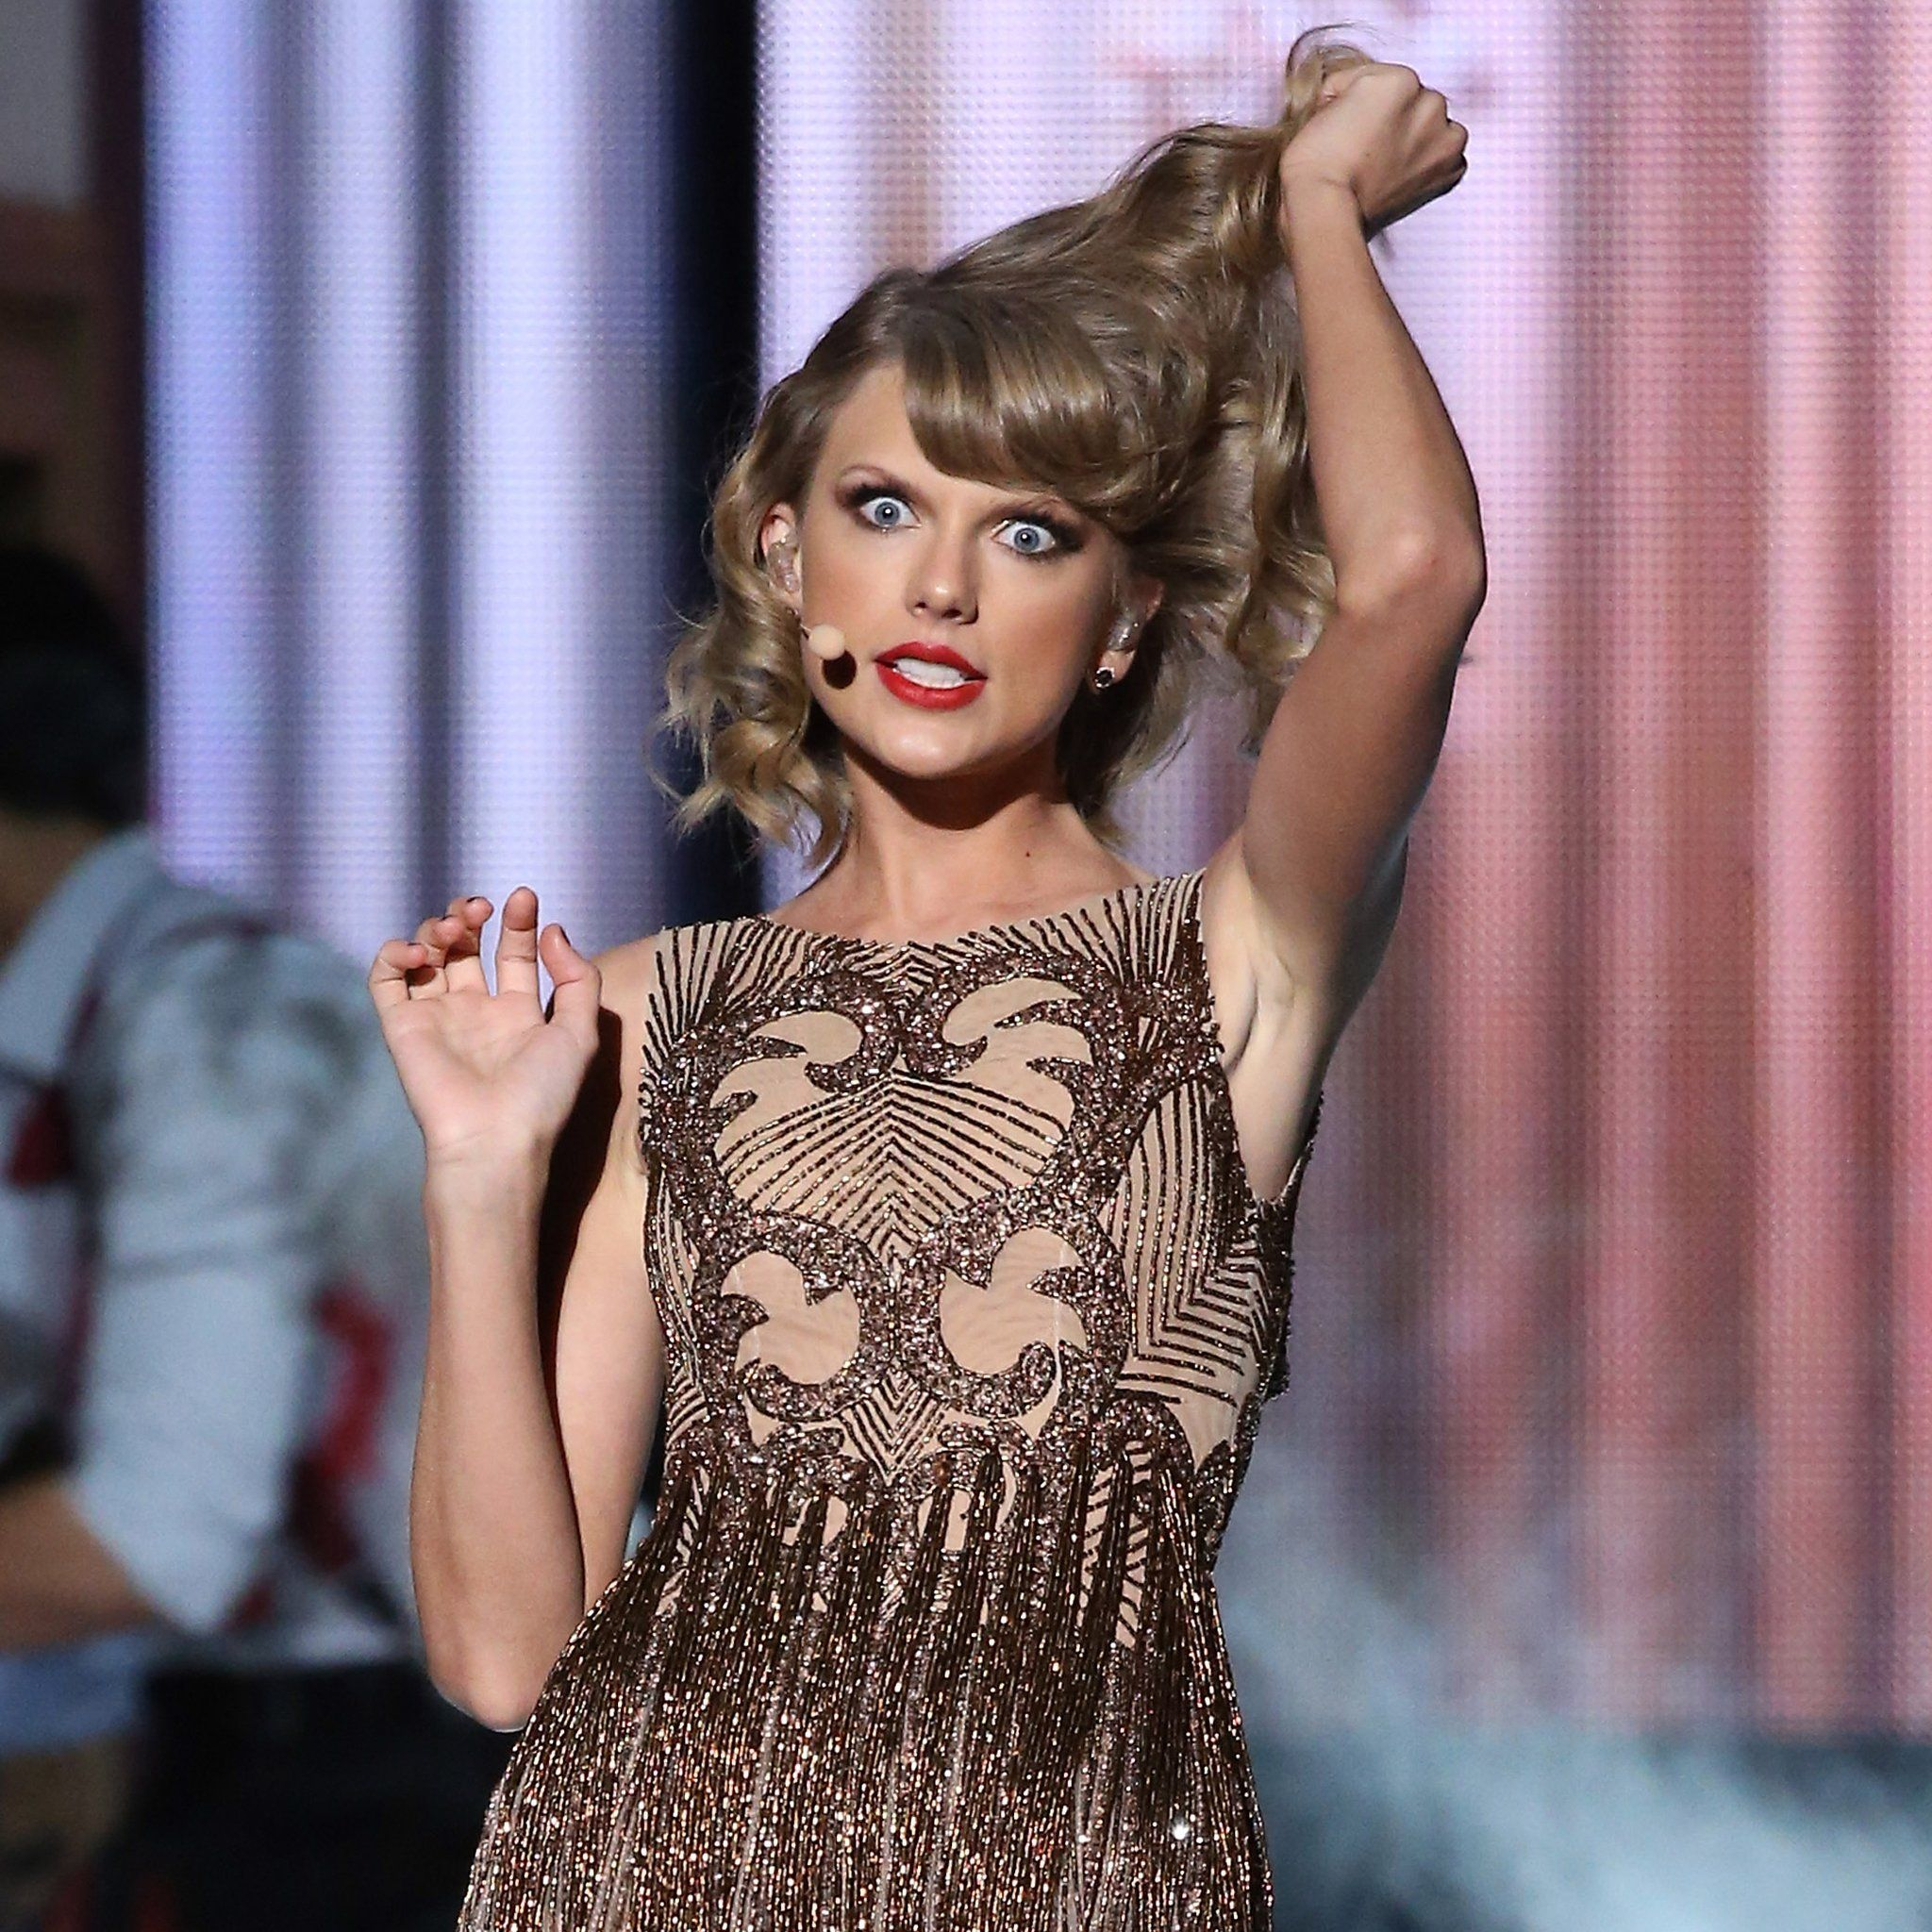 Taylor-Swift-kicked-off-night-first-live-performance.jpg (2048×2048)